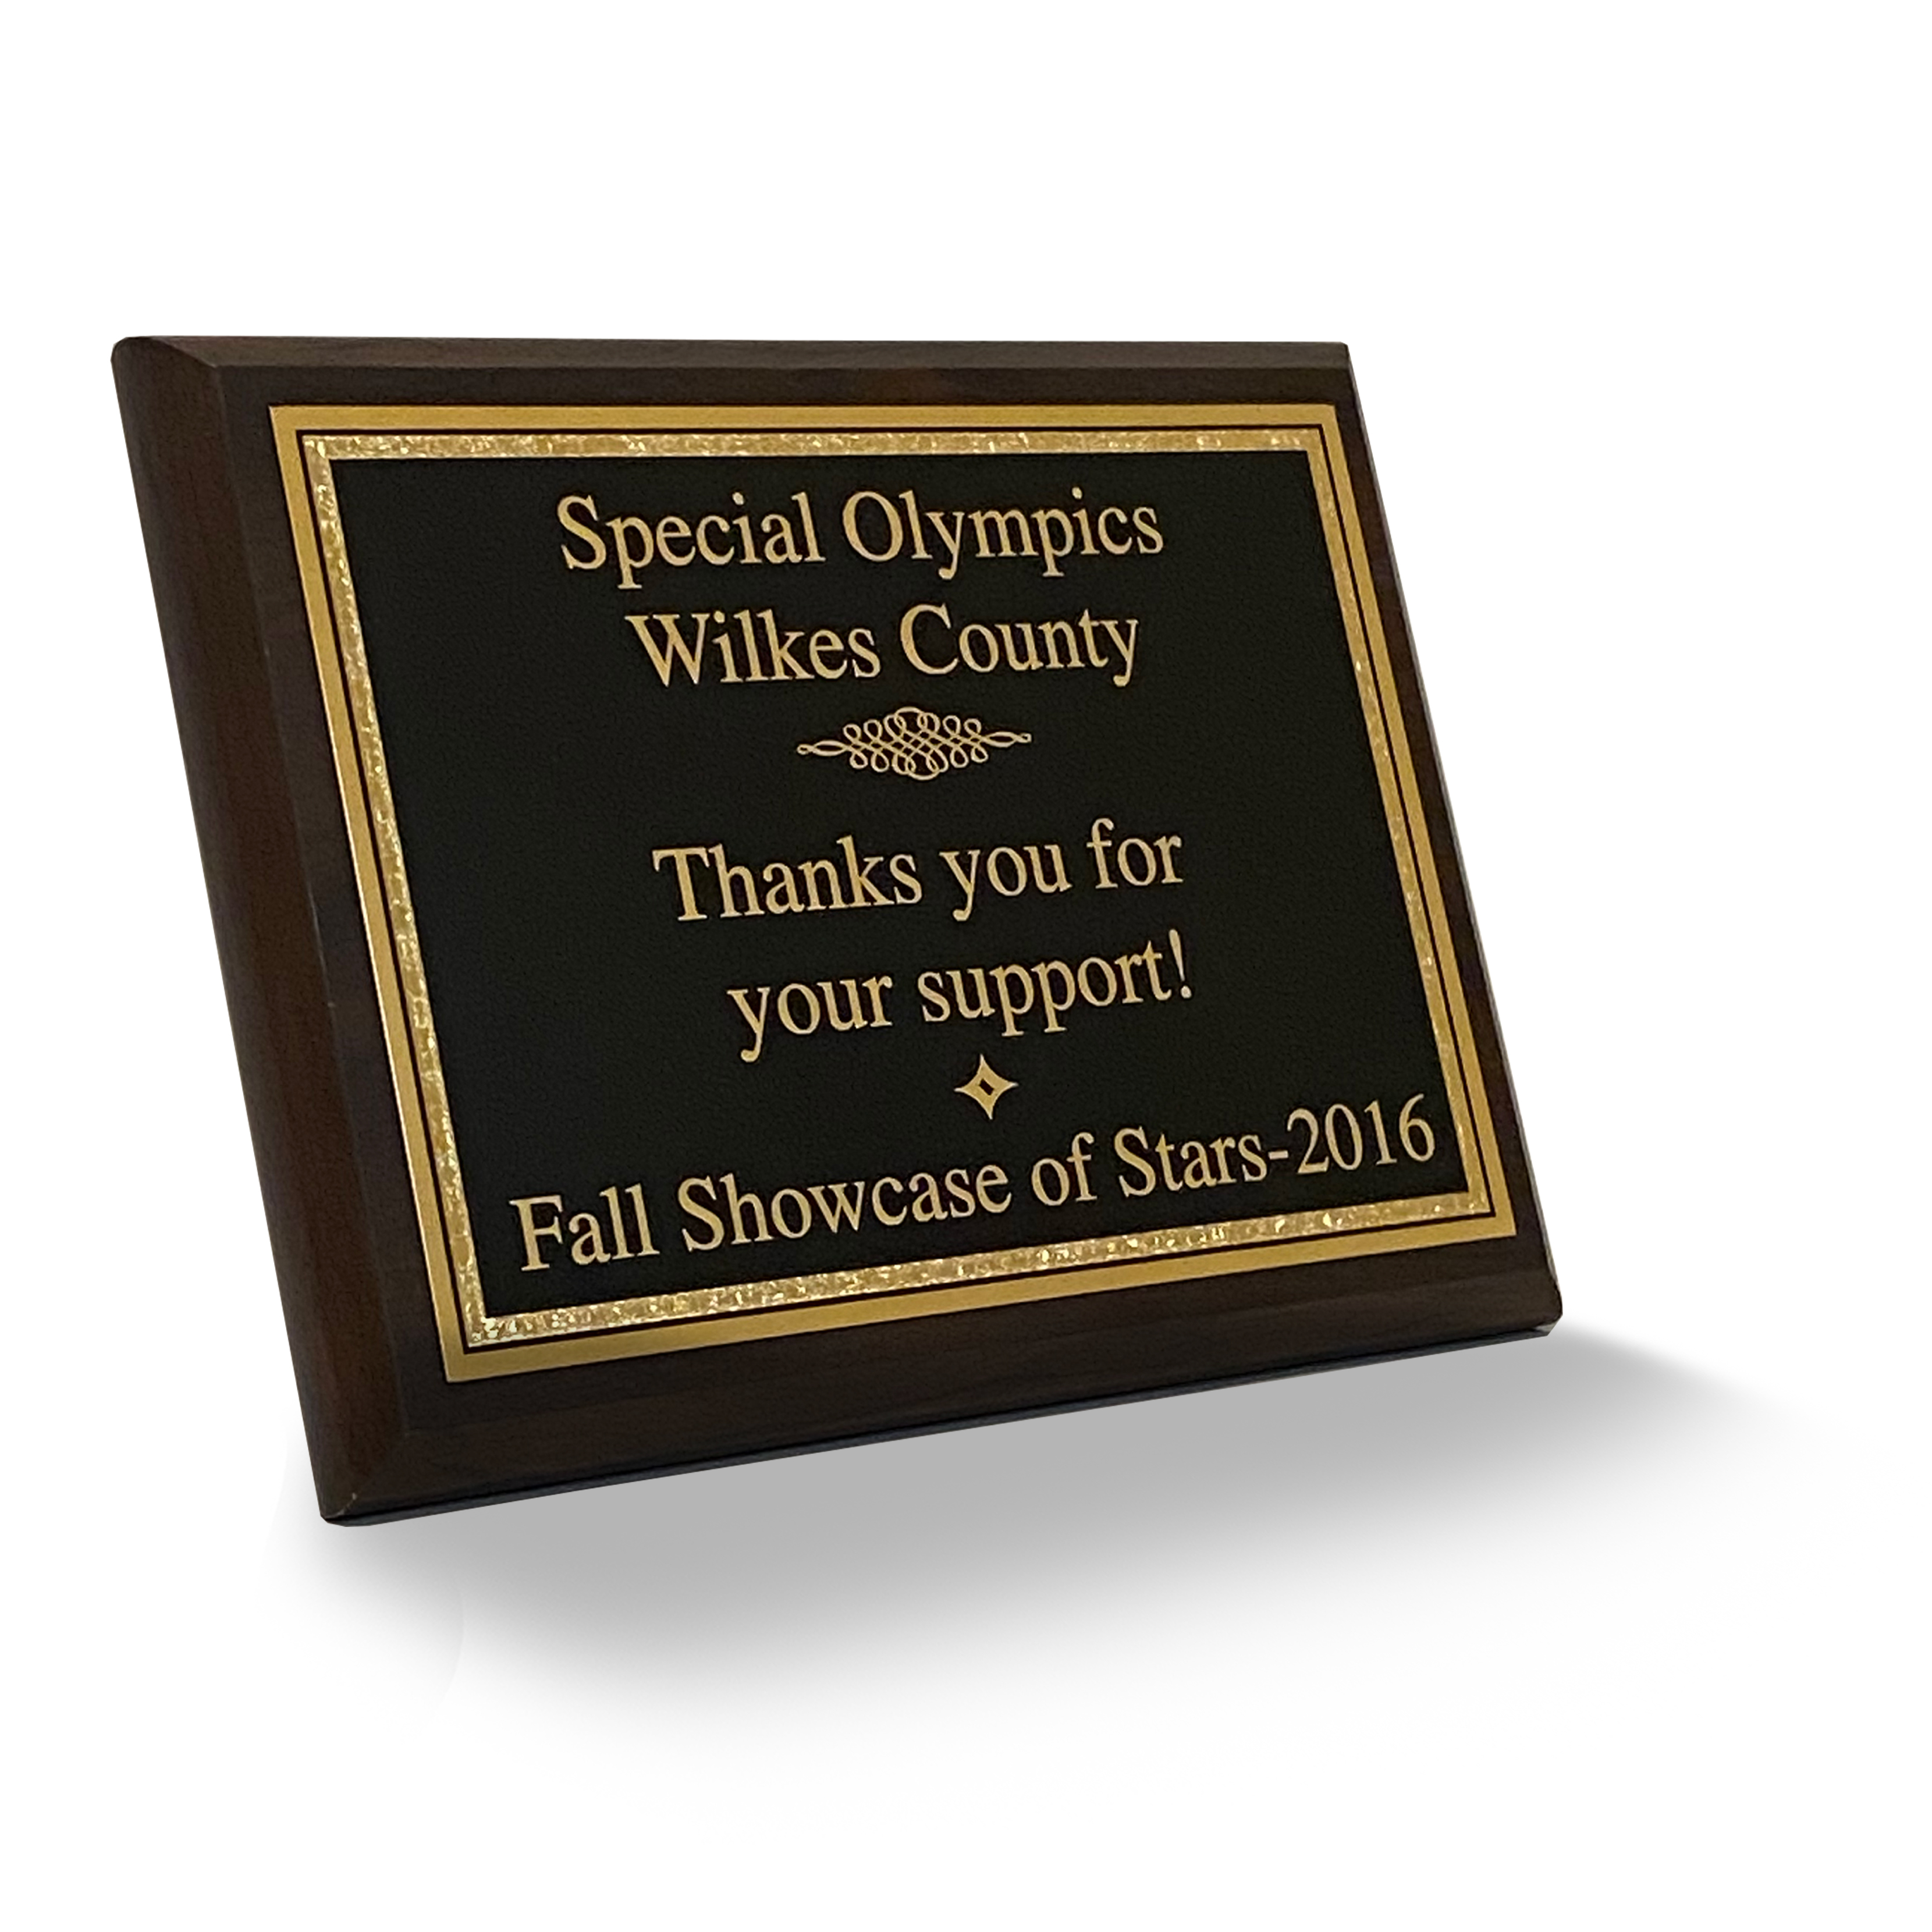 2016 Wilkes County Special Olympics